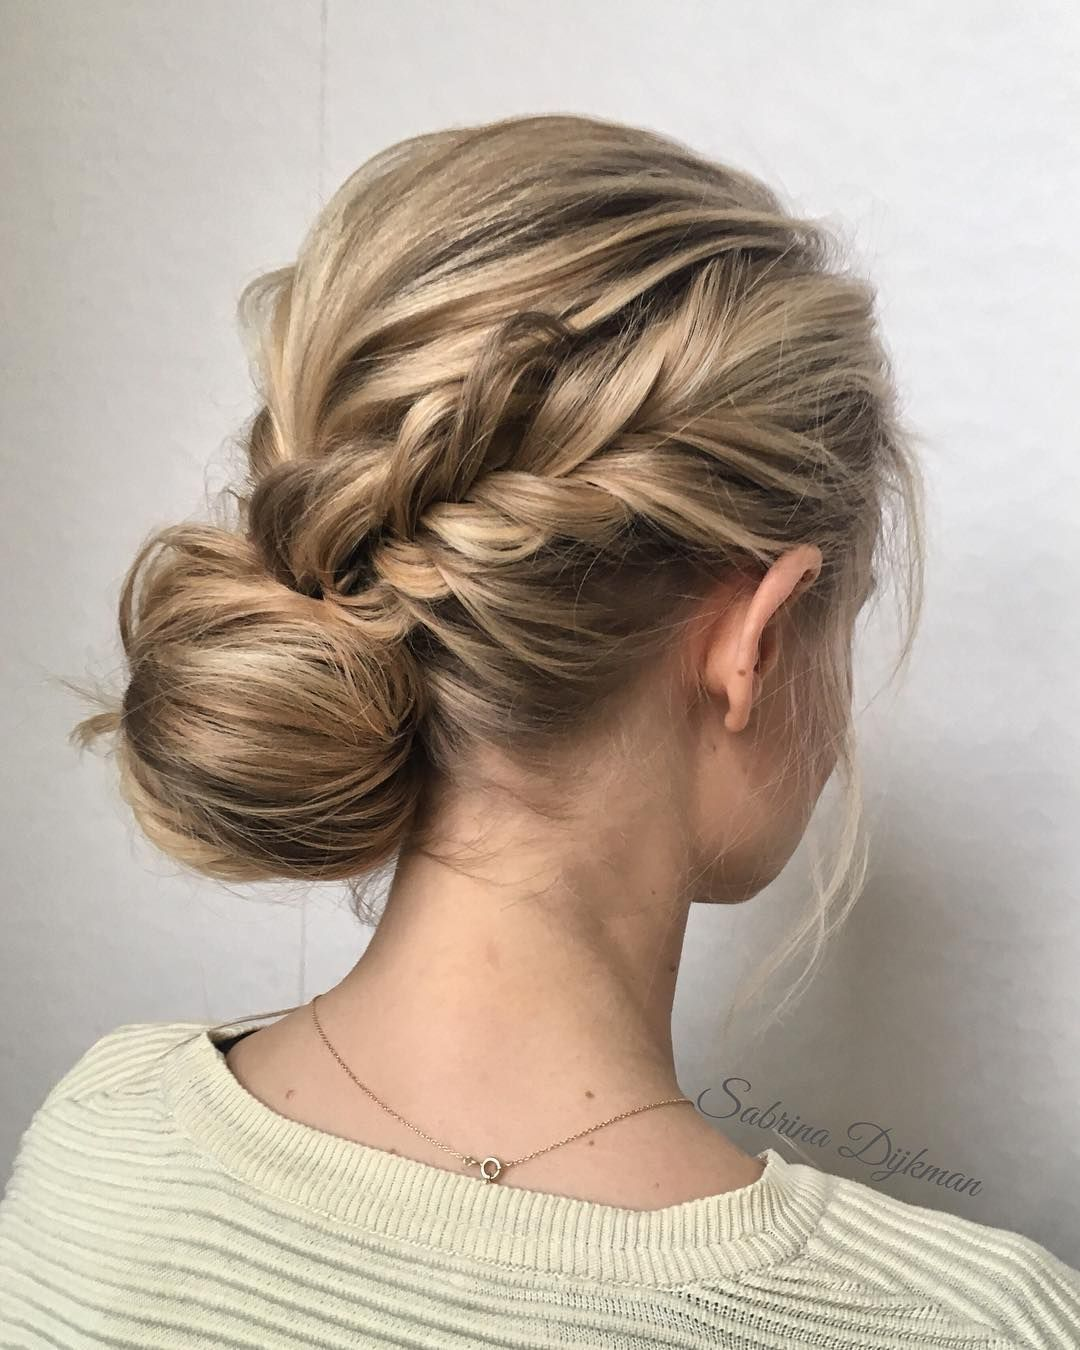 side updo for any bride looking for a unique style | hair